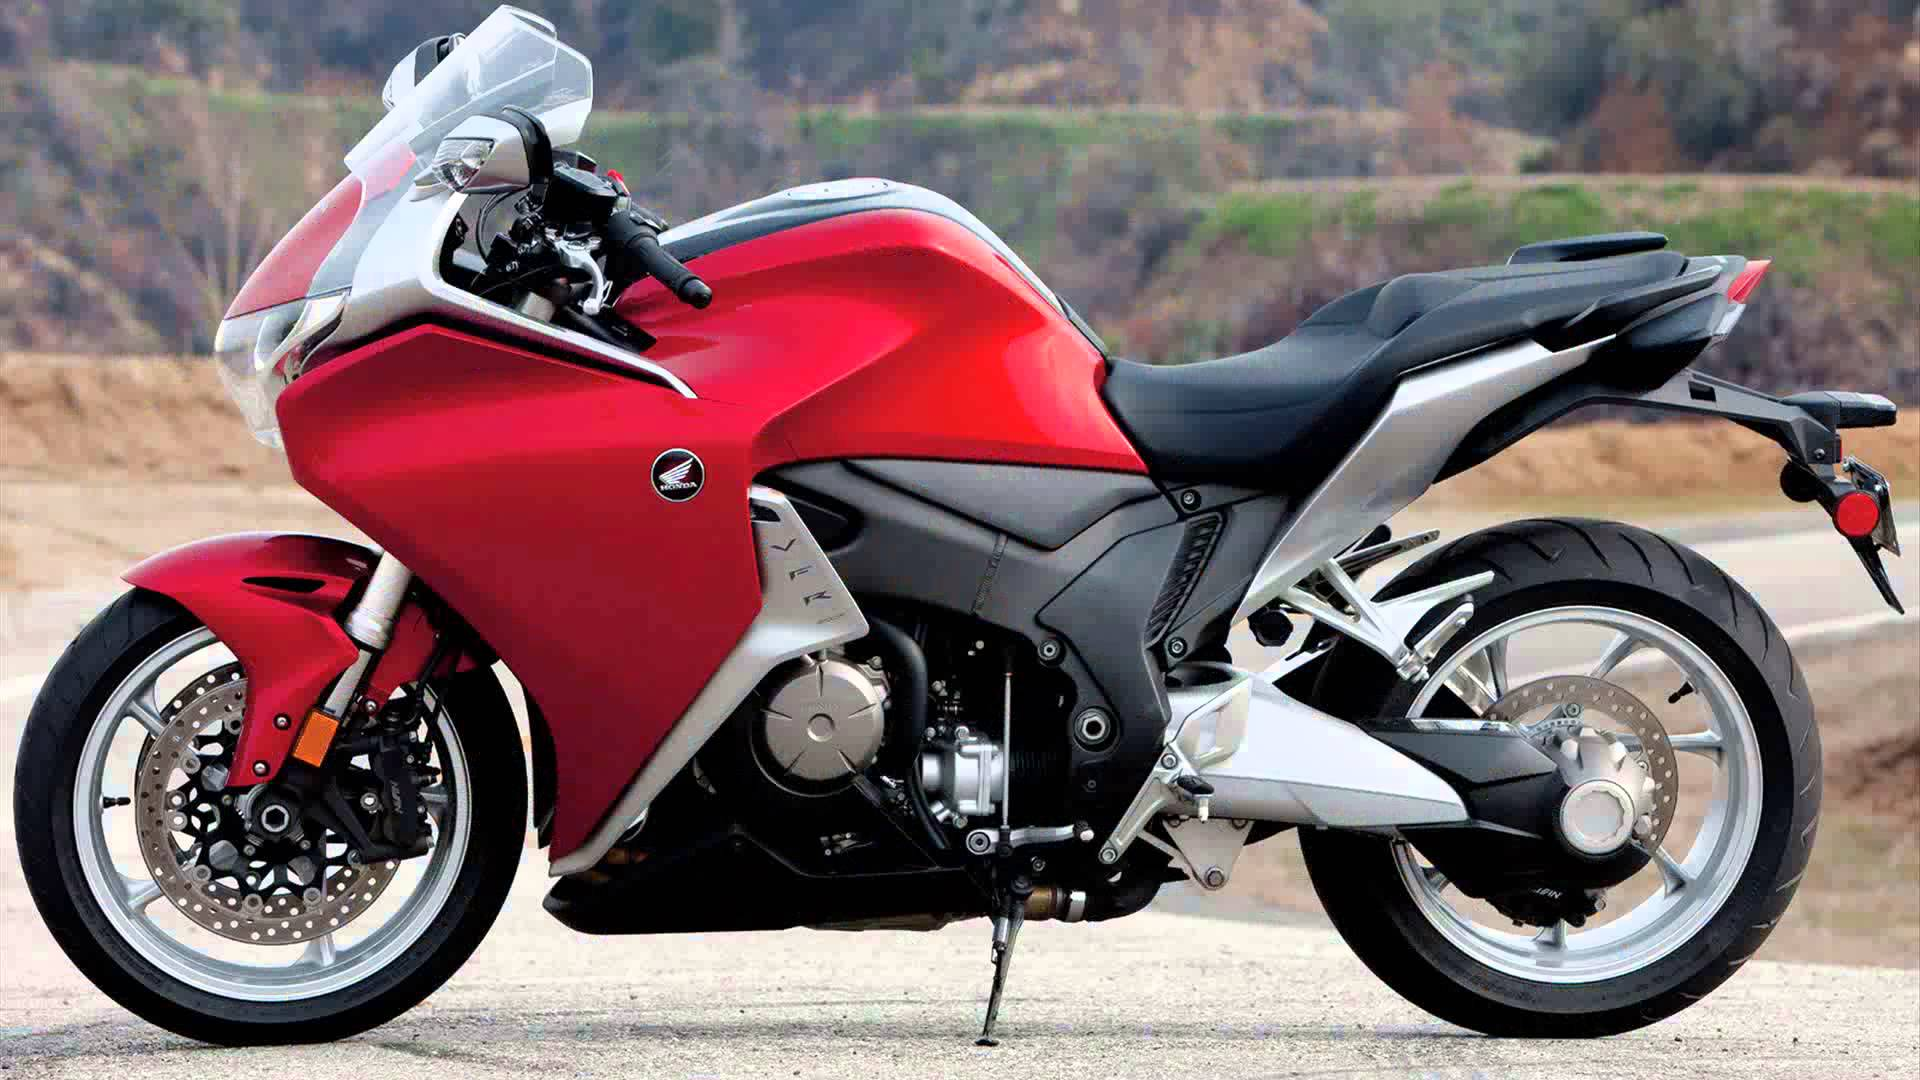 2014 honda vfr 1200 f pic 18. Black Bedroom Furniture Sets. Home Design Ideas